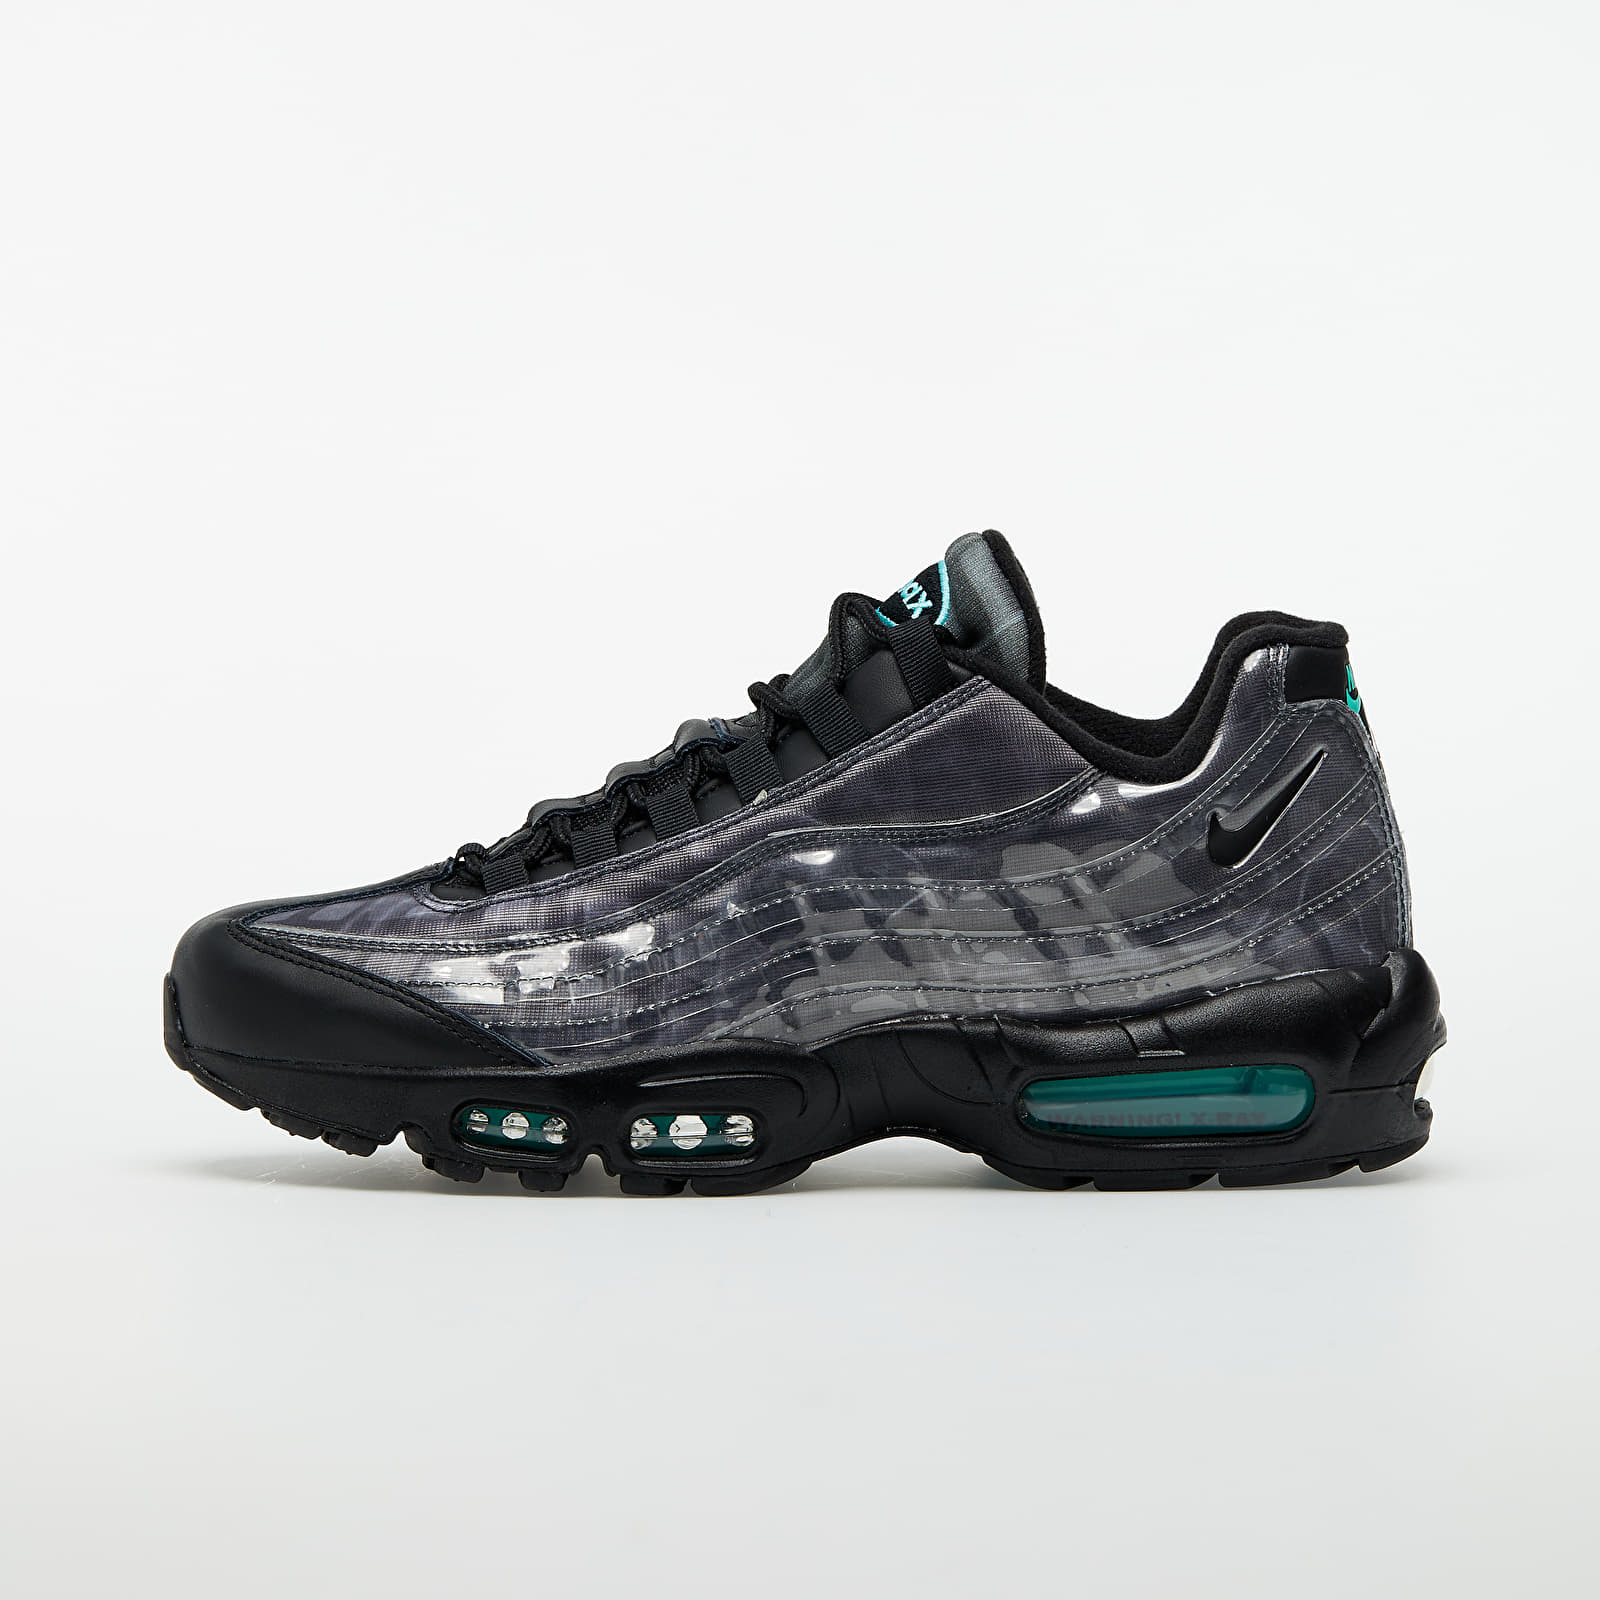 Nike Air Max 95 Black/ Black-Aurora Green-Smoke Grey EUR 42.5